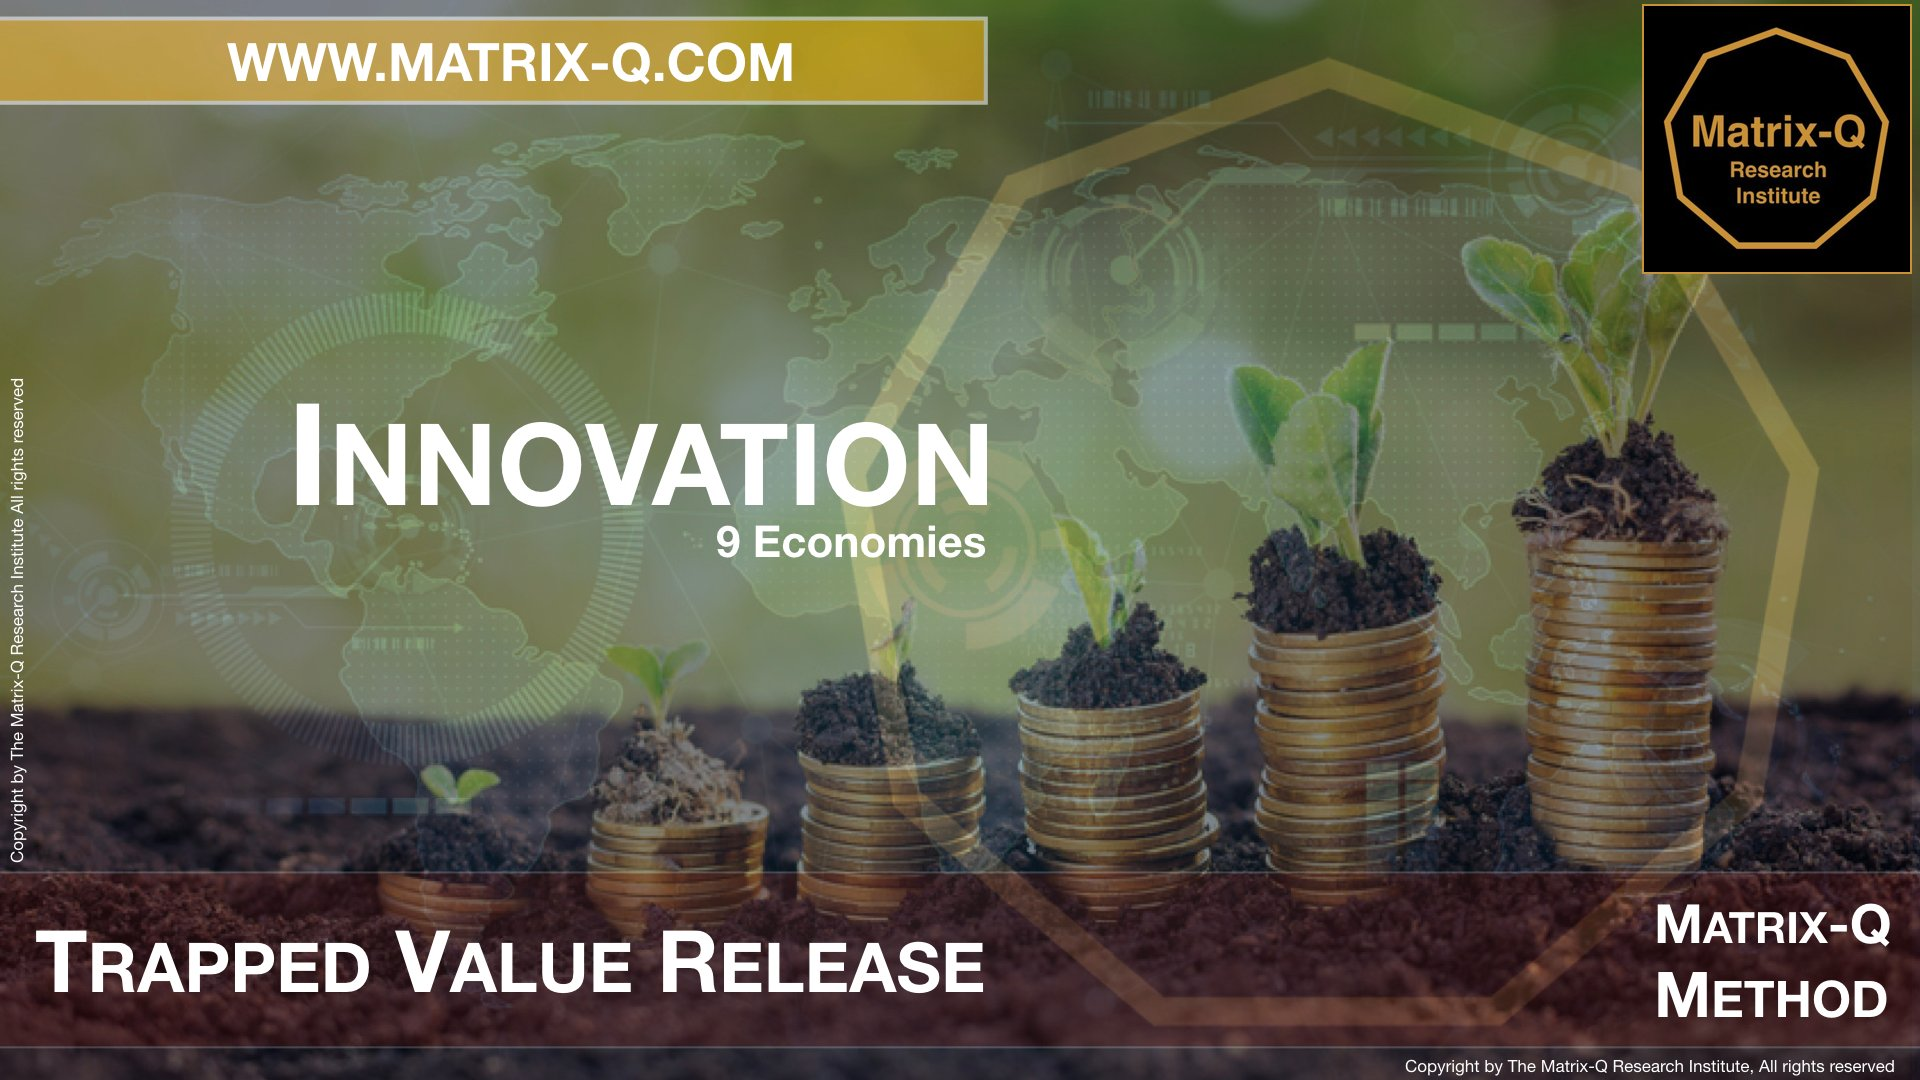 MQRI Matrix-Q Innovation Trapped Value Release.013